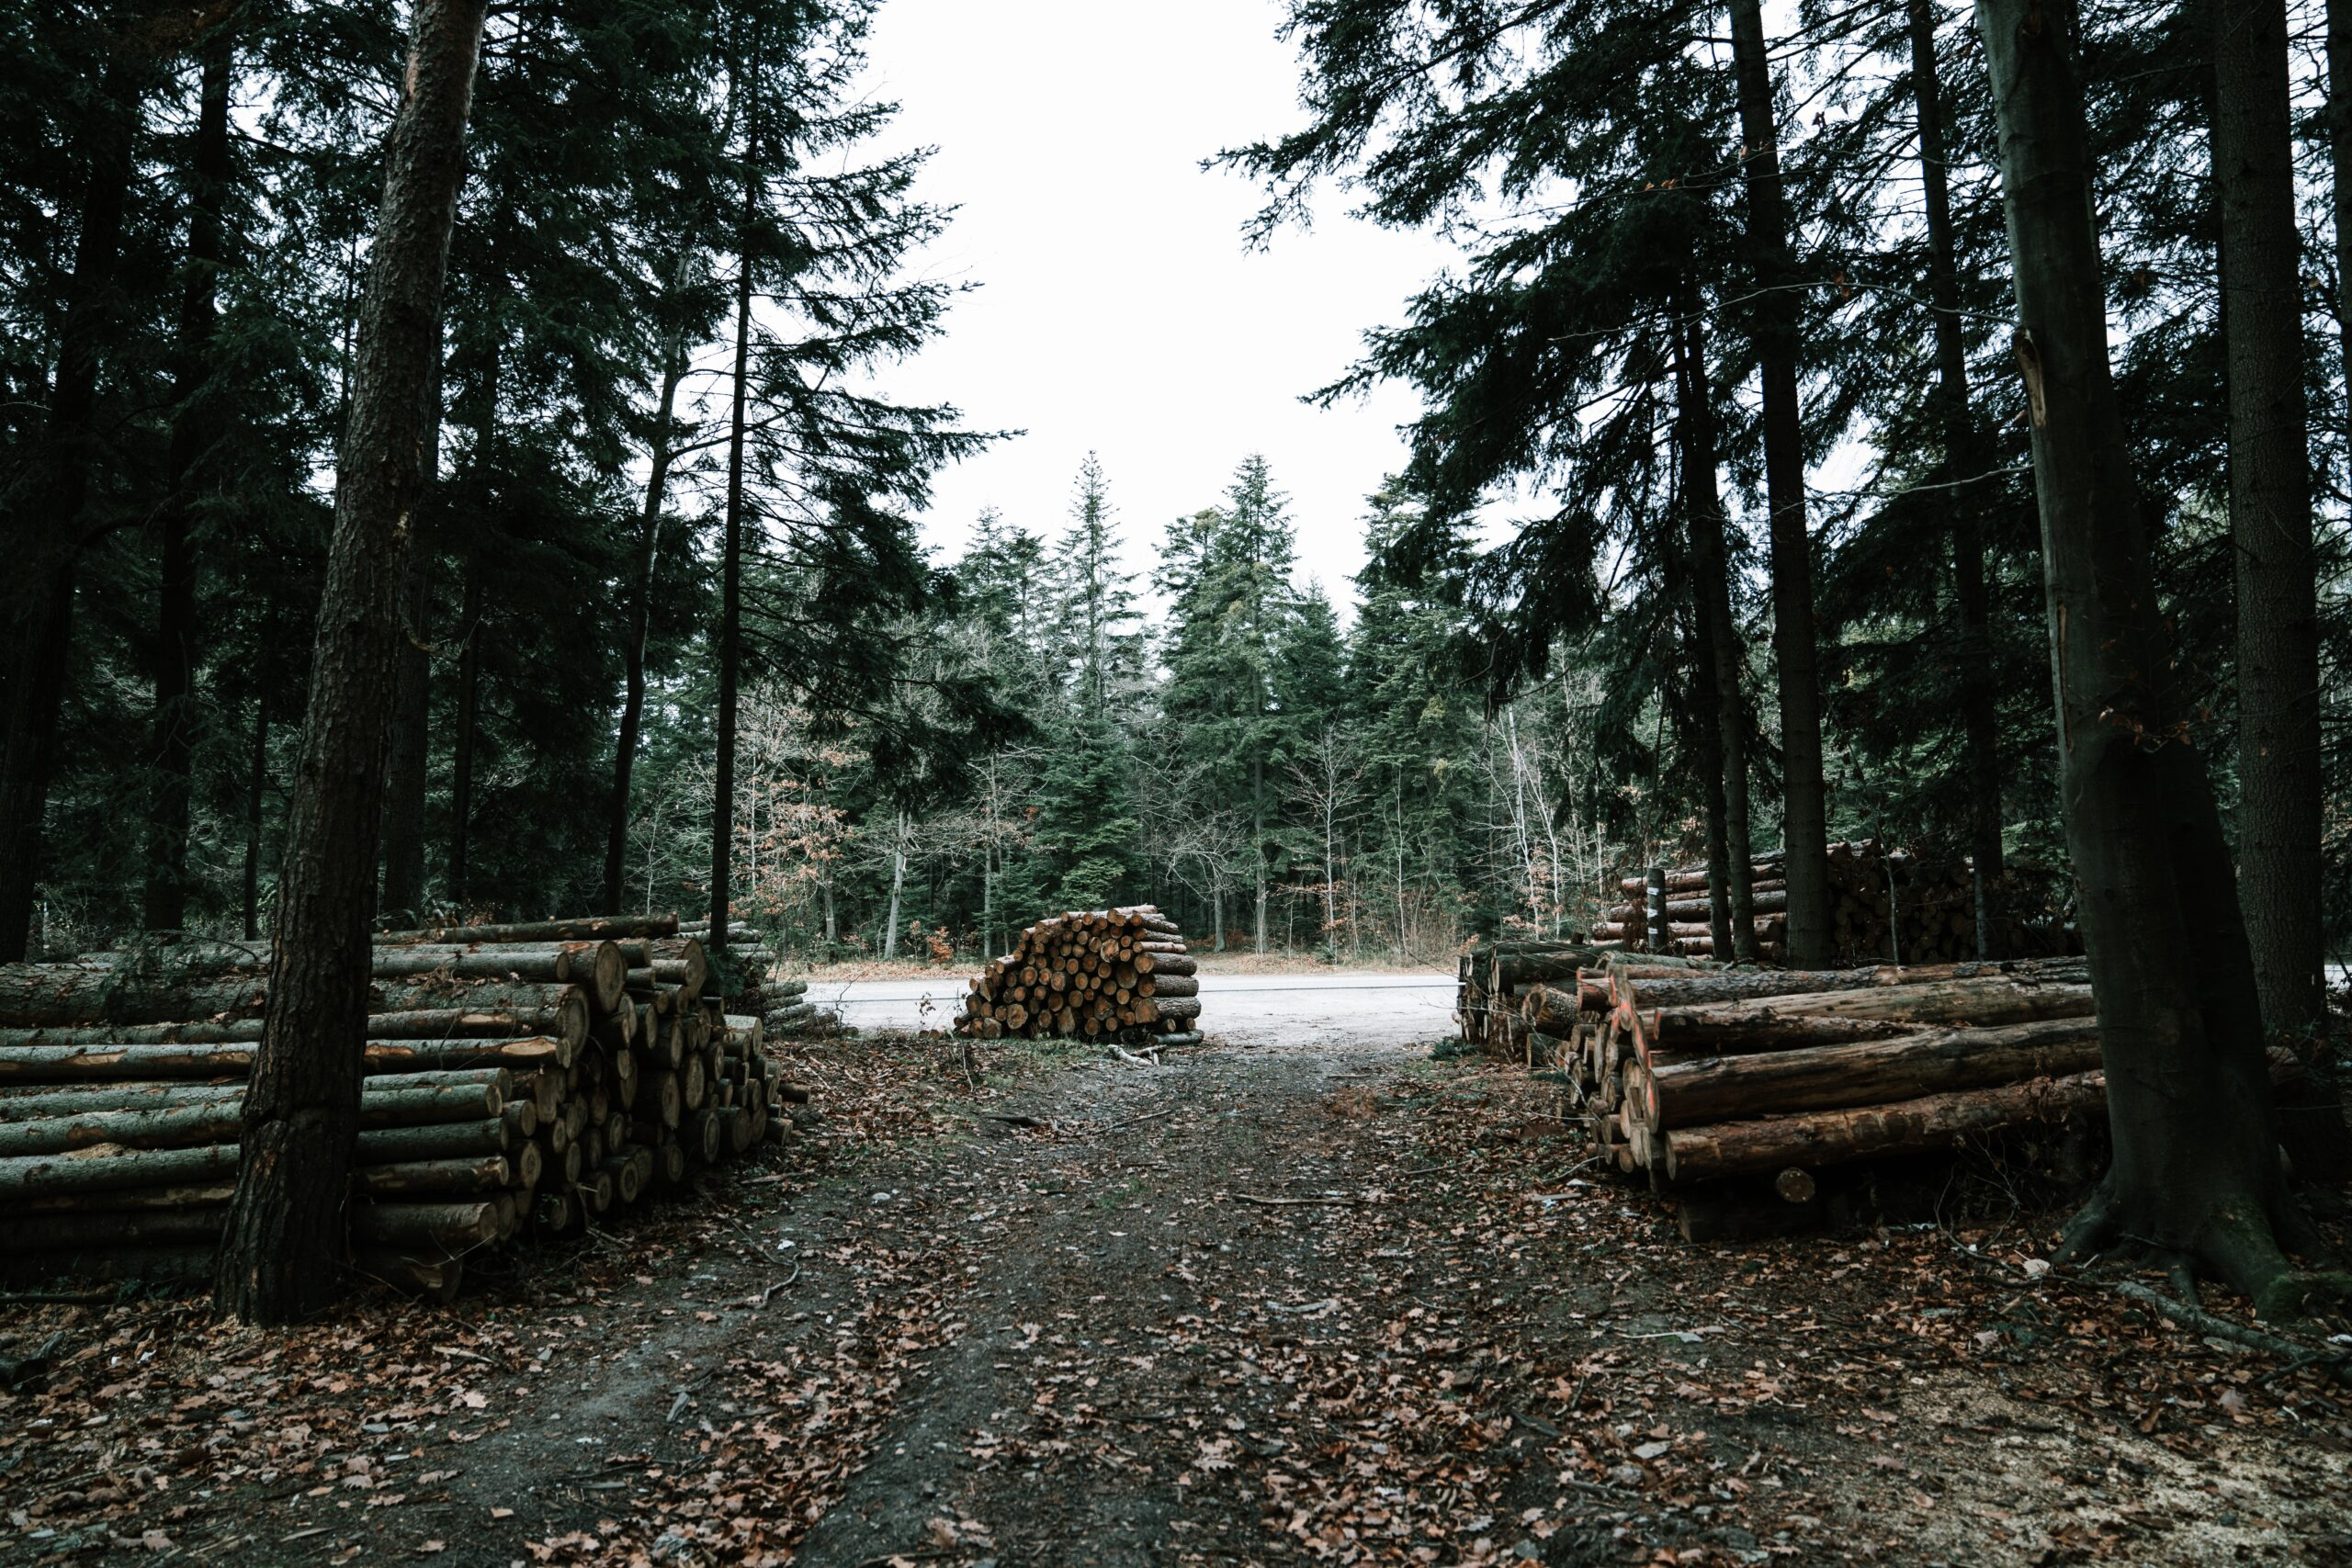 Lumber in Piles by trees